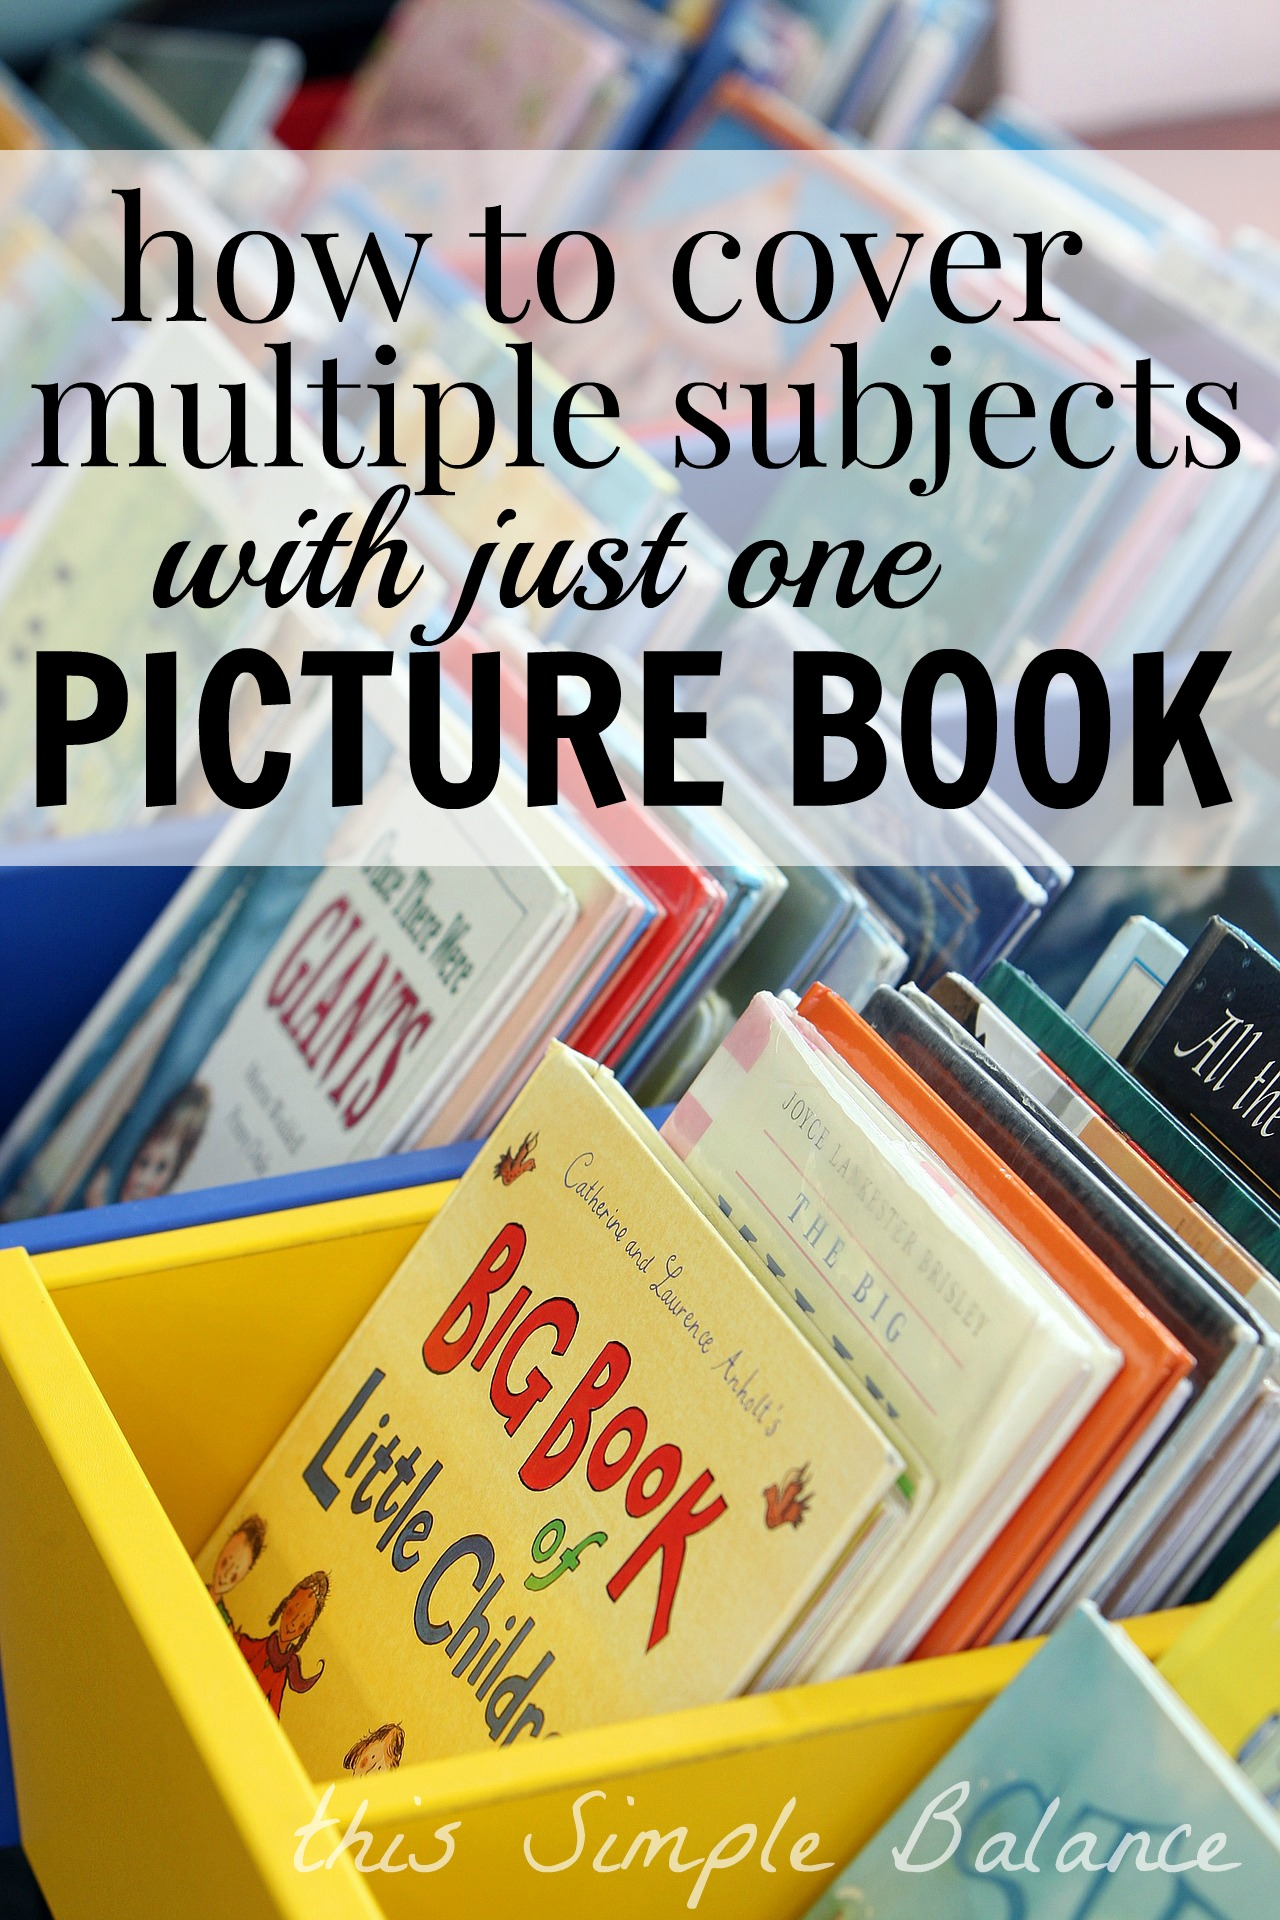 Use Picture Books in your Homeschool: I love this example - it helped me understand how I can use picture books to teach multiple subjects.